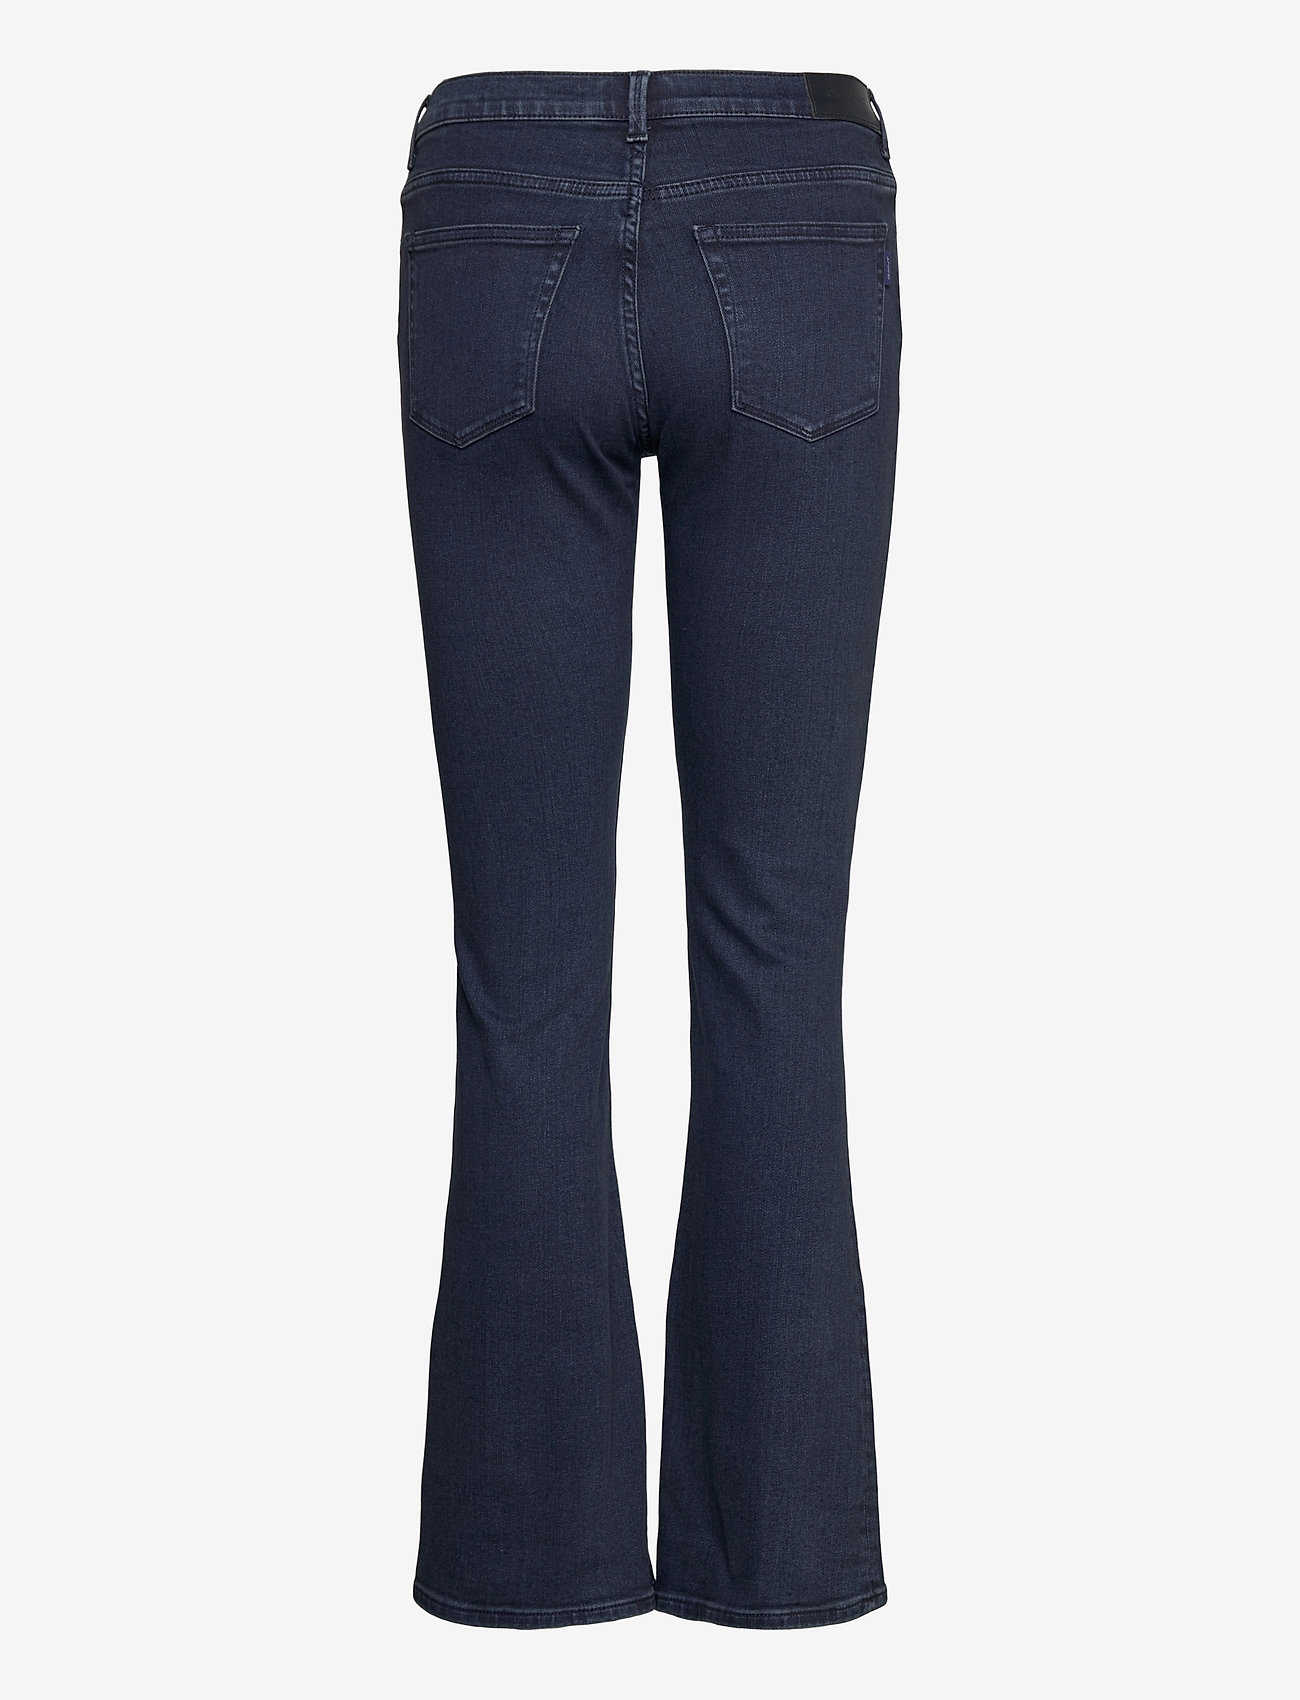 GANT - D1. SLIM BOOTCUT JEANS - boot cut jeans - dark blue broken in - 1